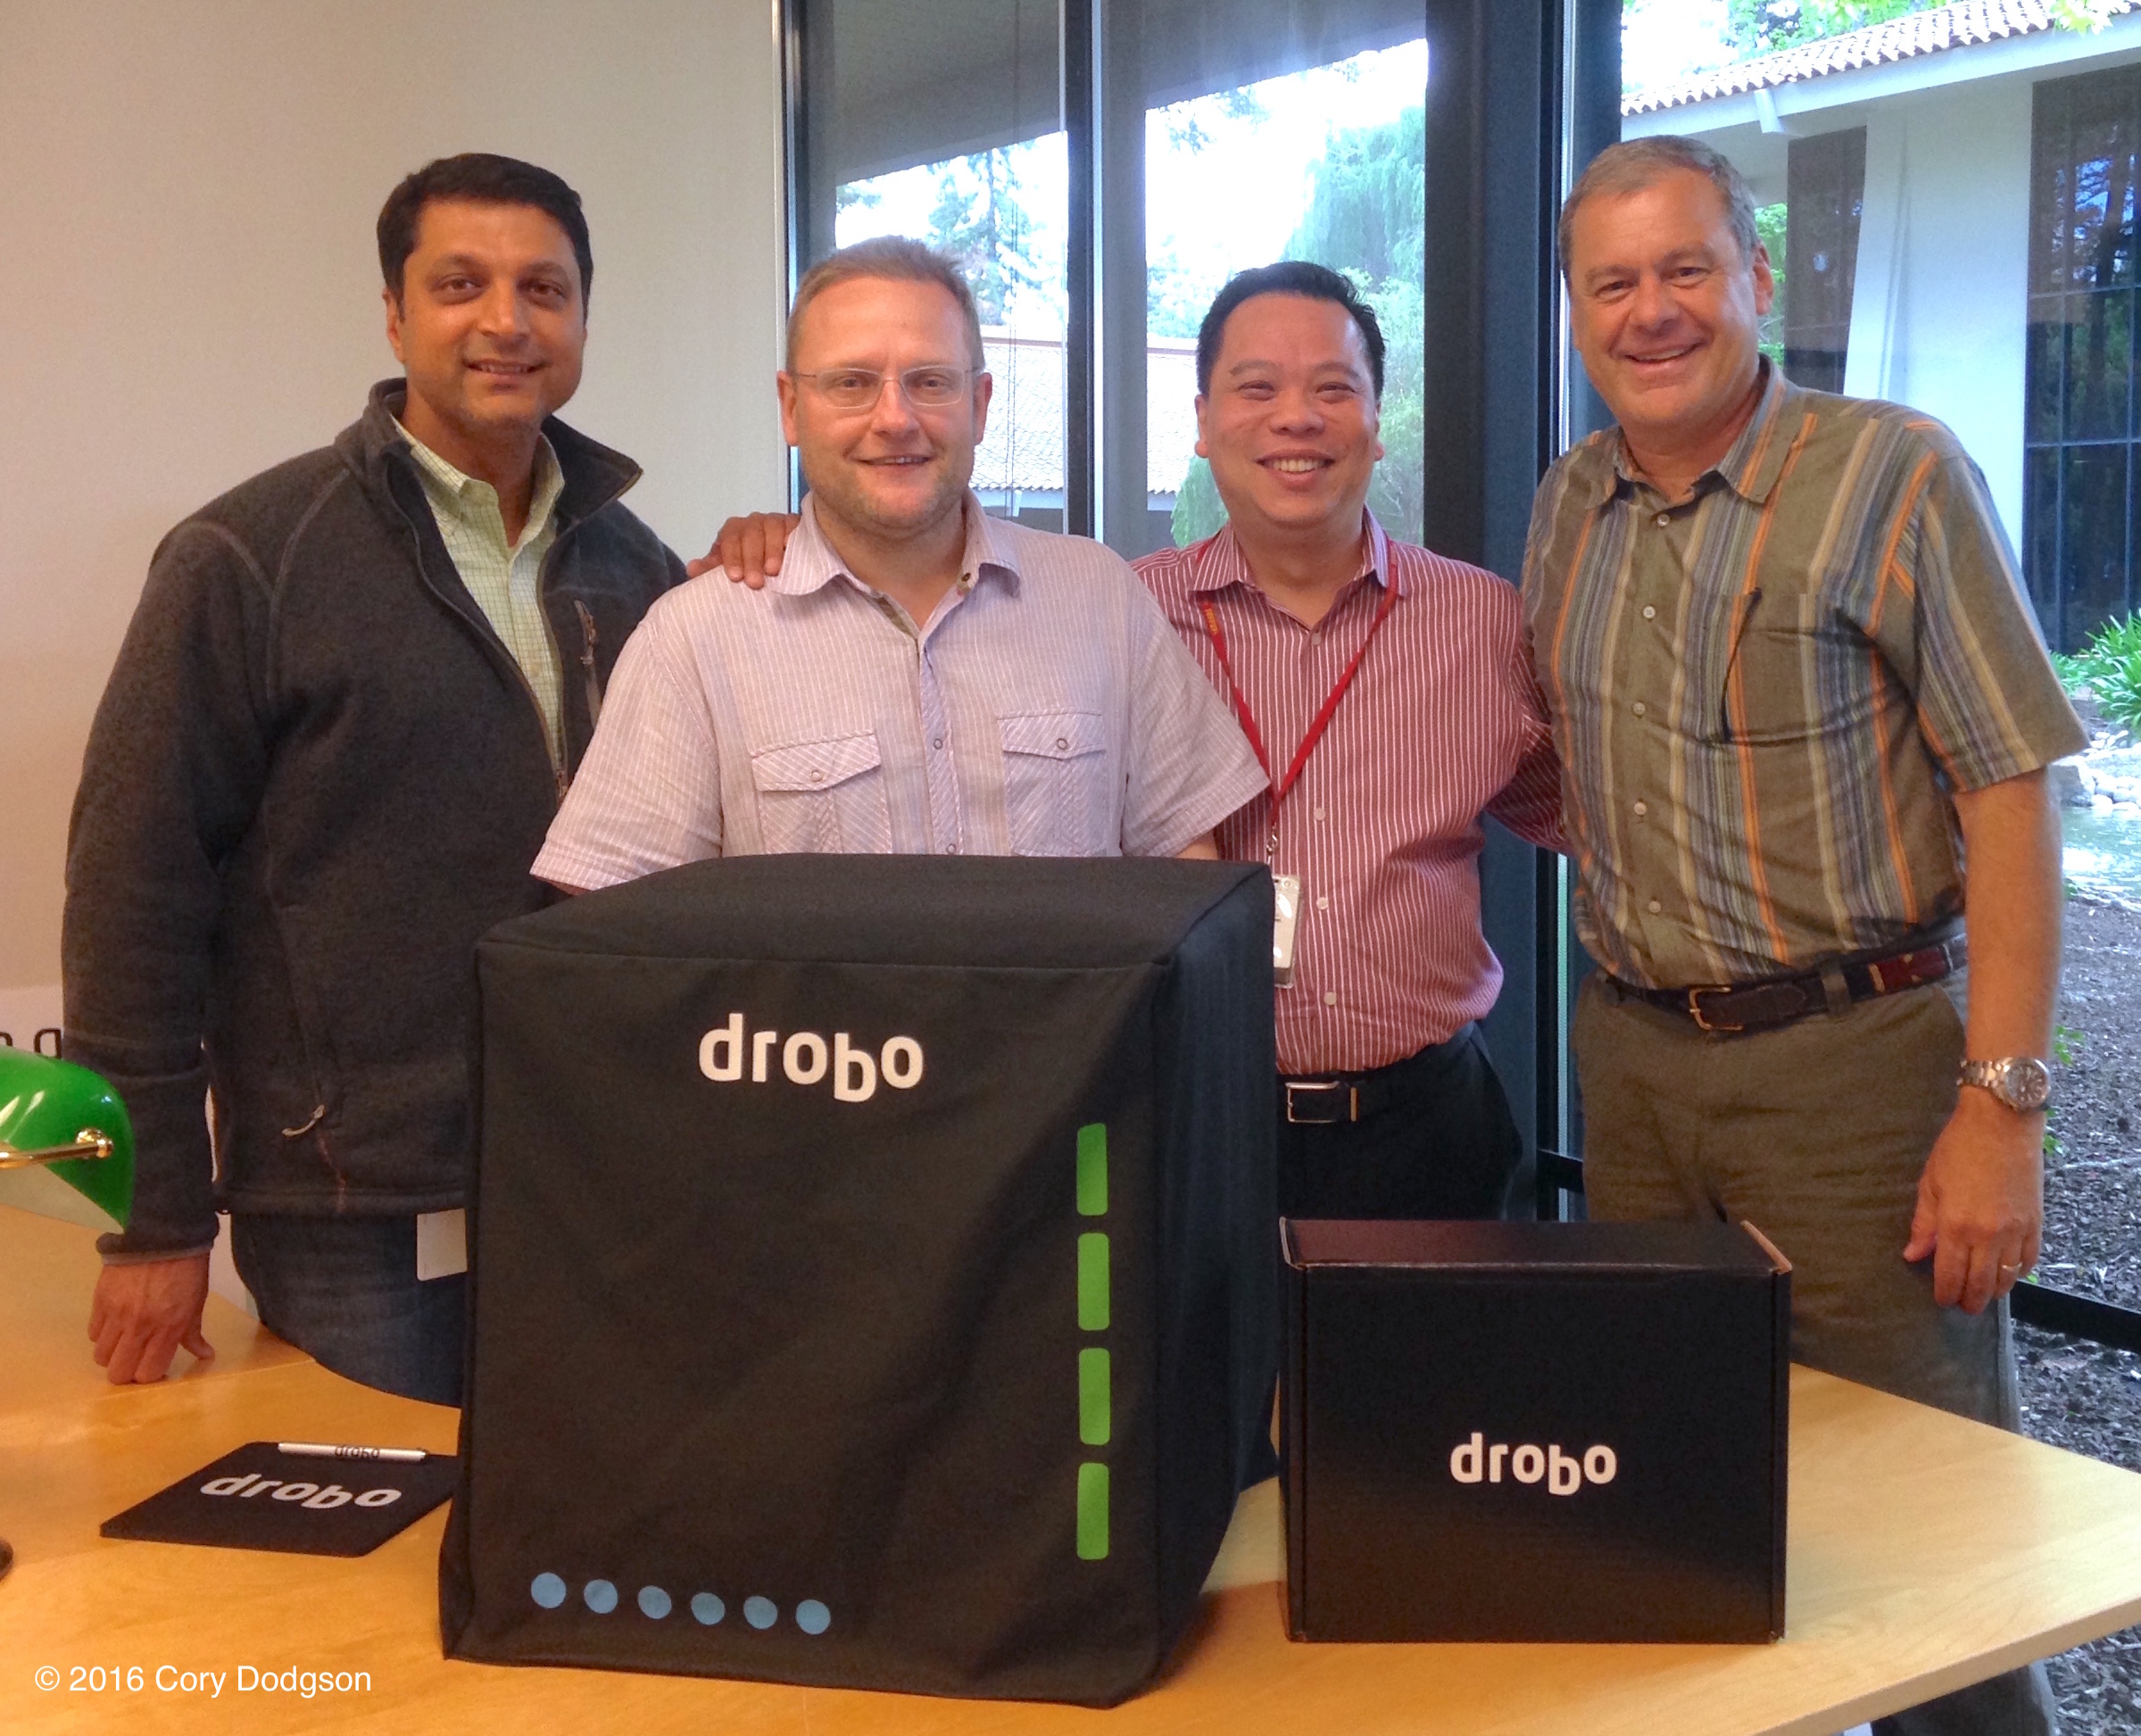 Drobo Ceo Mihir Shaw, CTo Rod Harrison, VP of Sales Tom Wong and Daniel Cox at Drobo headquarters in San Jose, Ca.